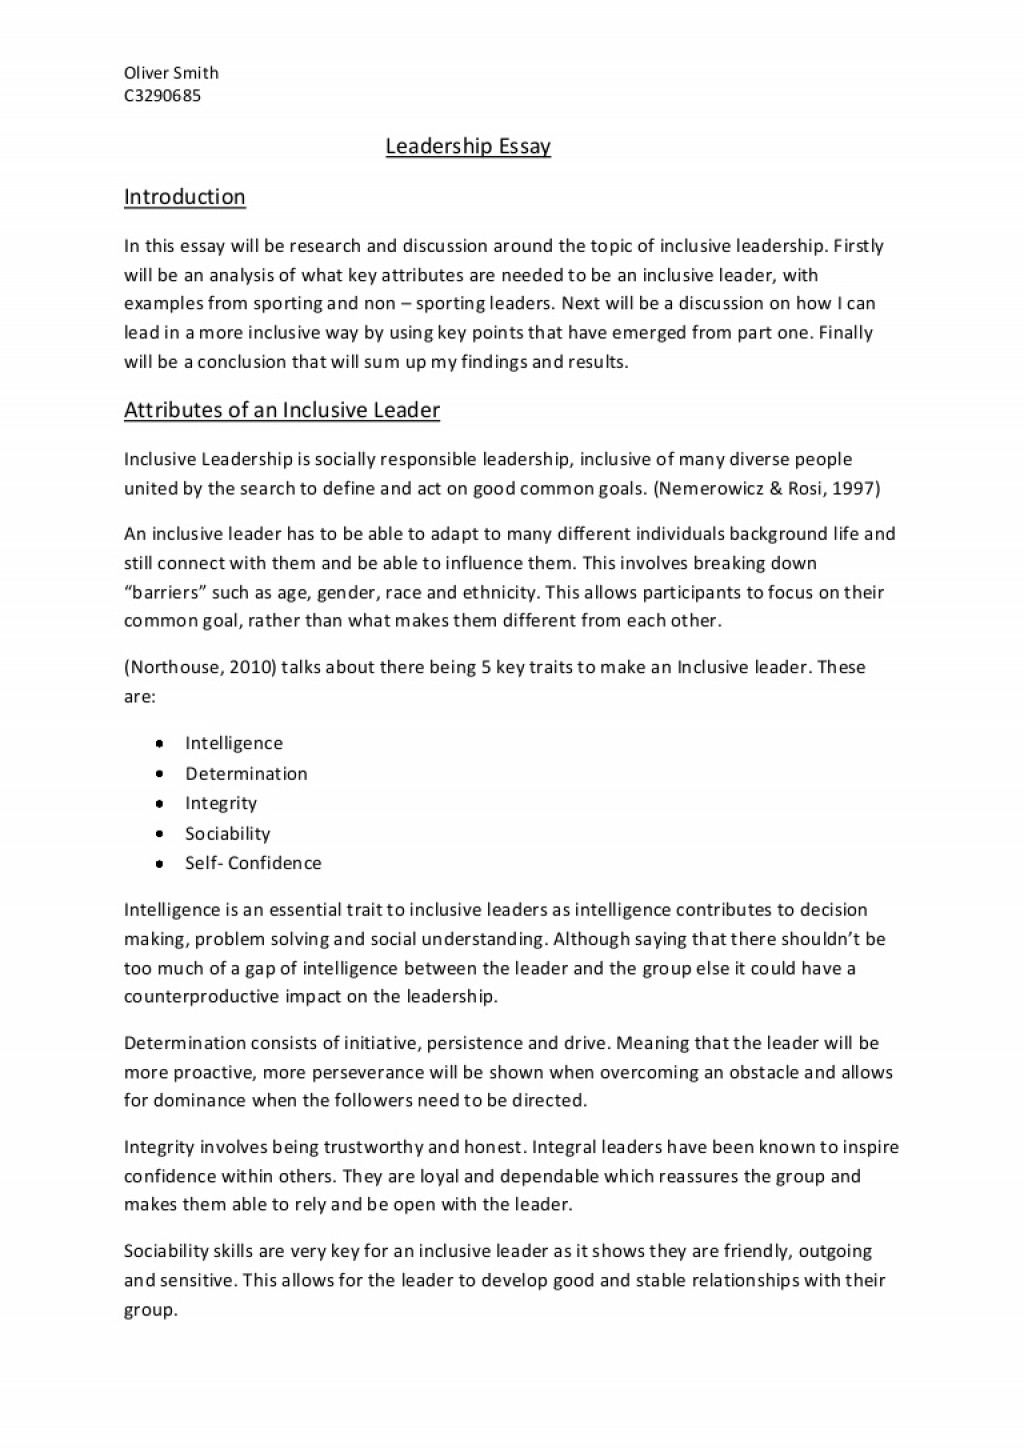 001 Essay Example What Are The Qualities Of Good Leader Leadershipessay Phpapp01 Thumbnail Formidable A Characteristics Pdf Introduction Make Large